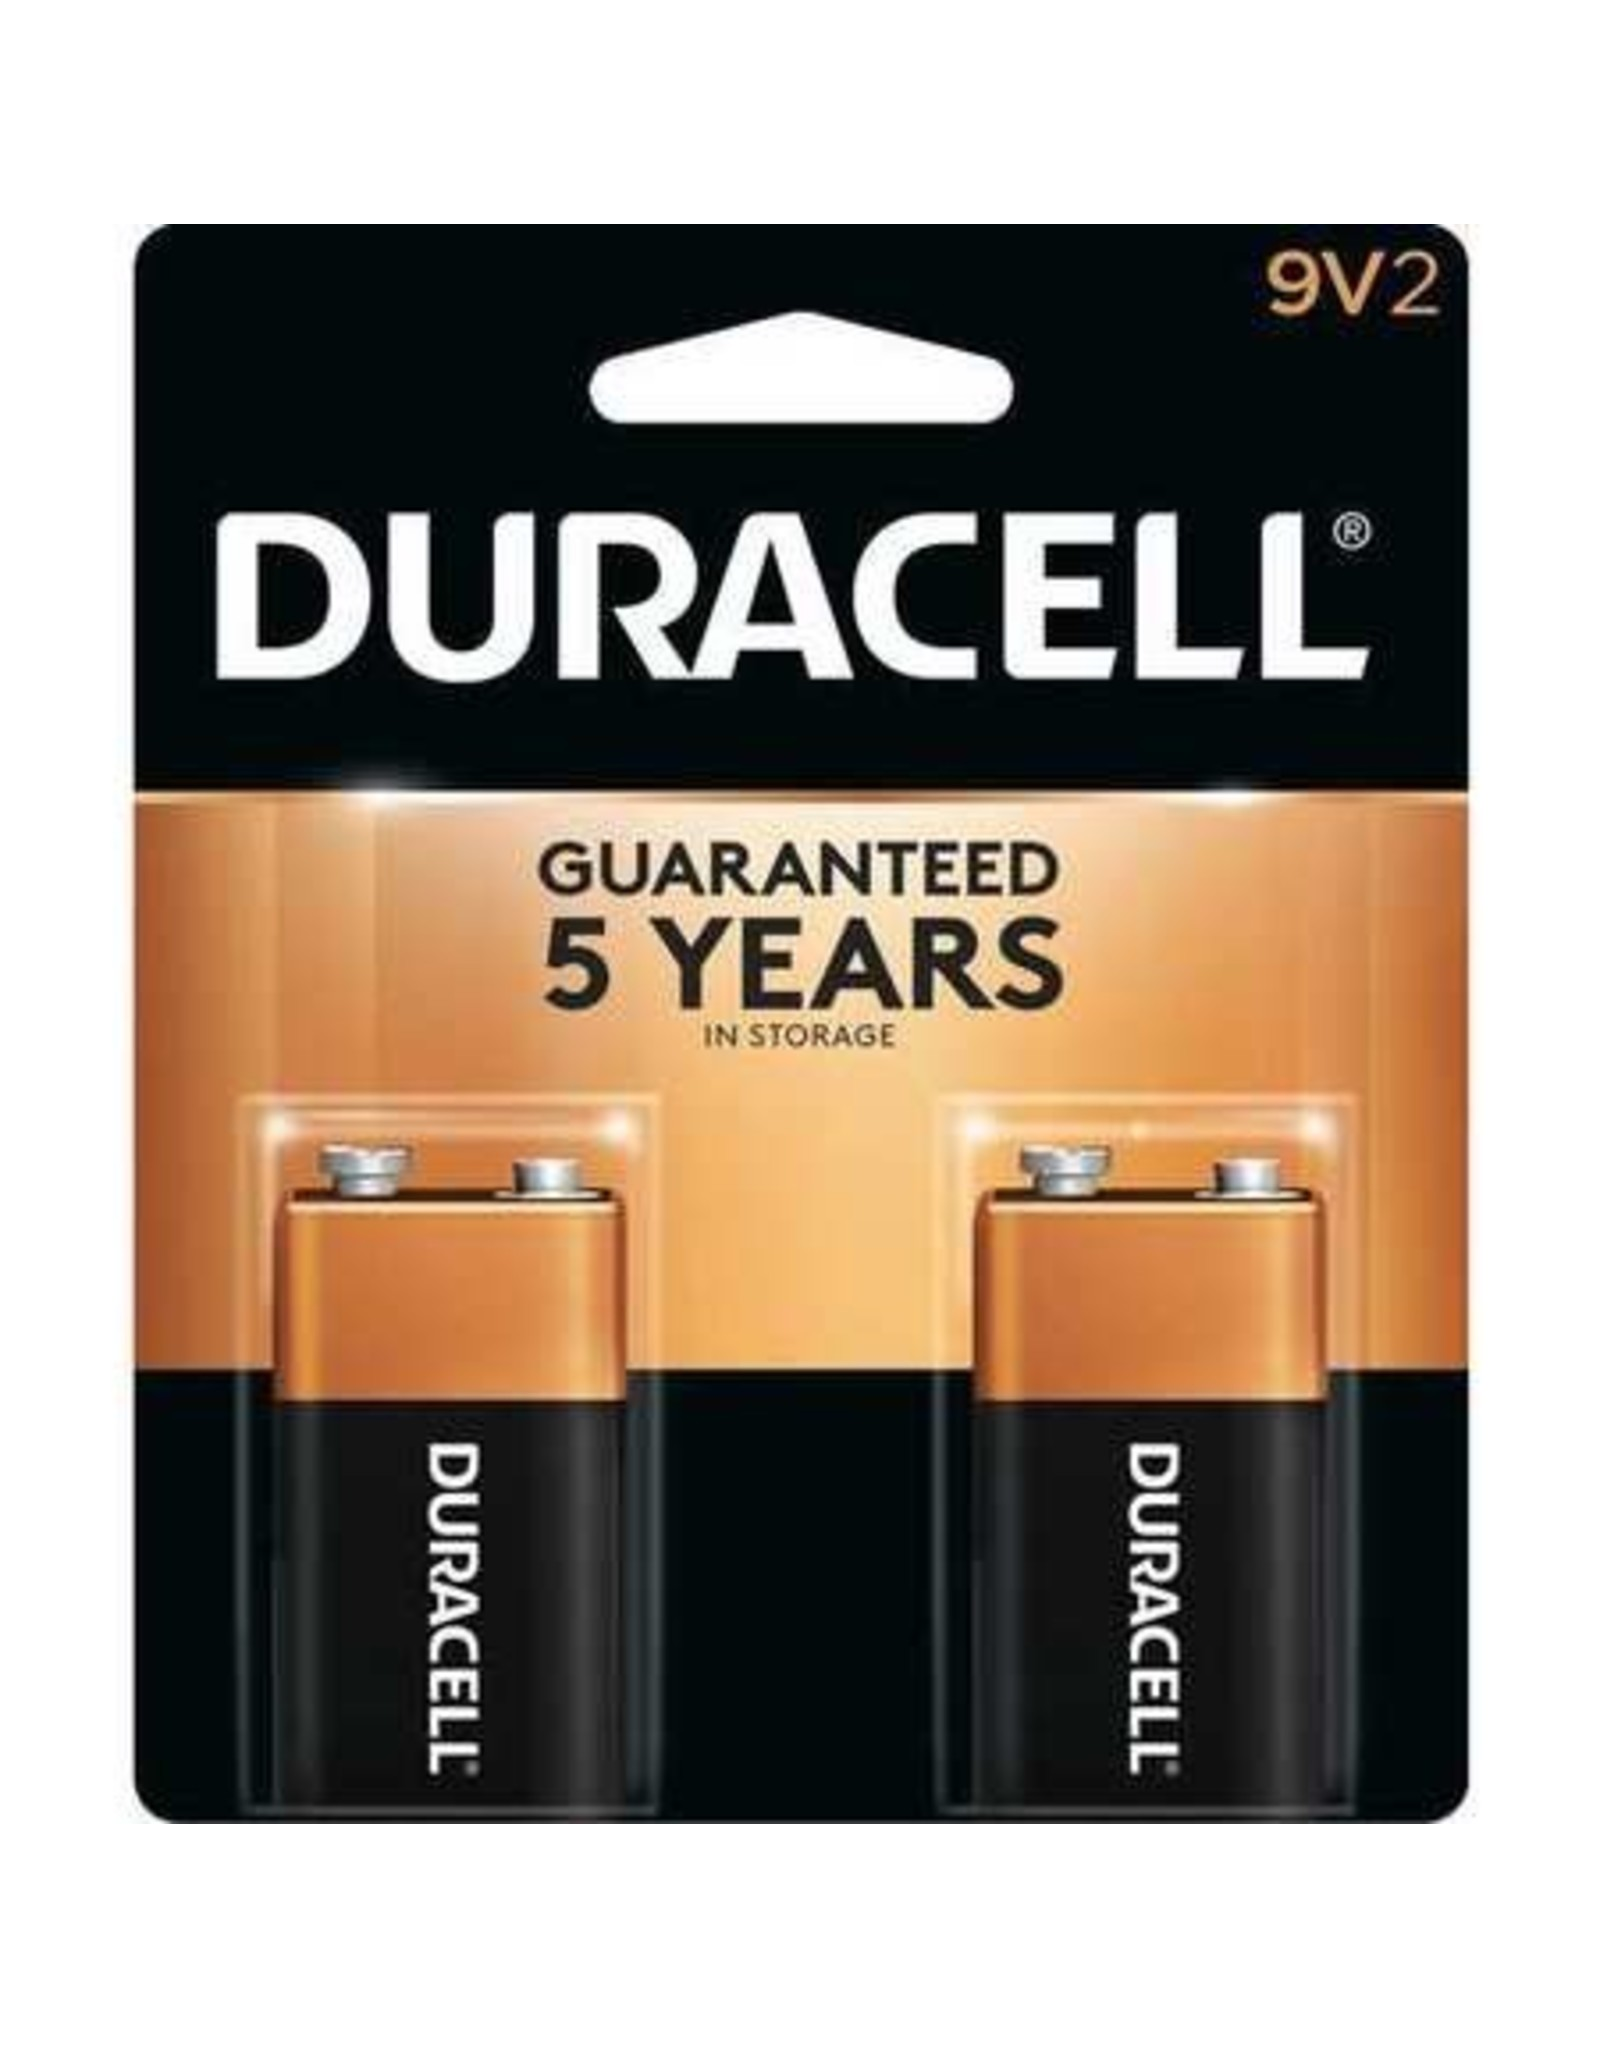 Duracell Duracell 9V Coppertop Alkaline Batteries 2 Pack